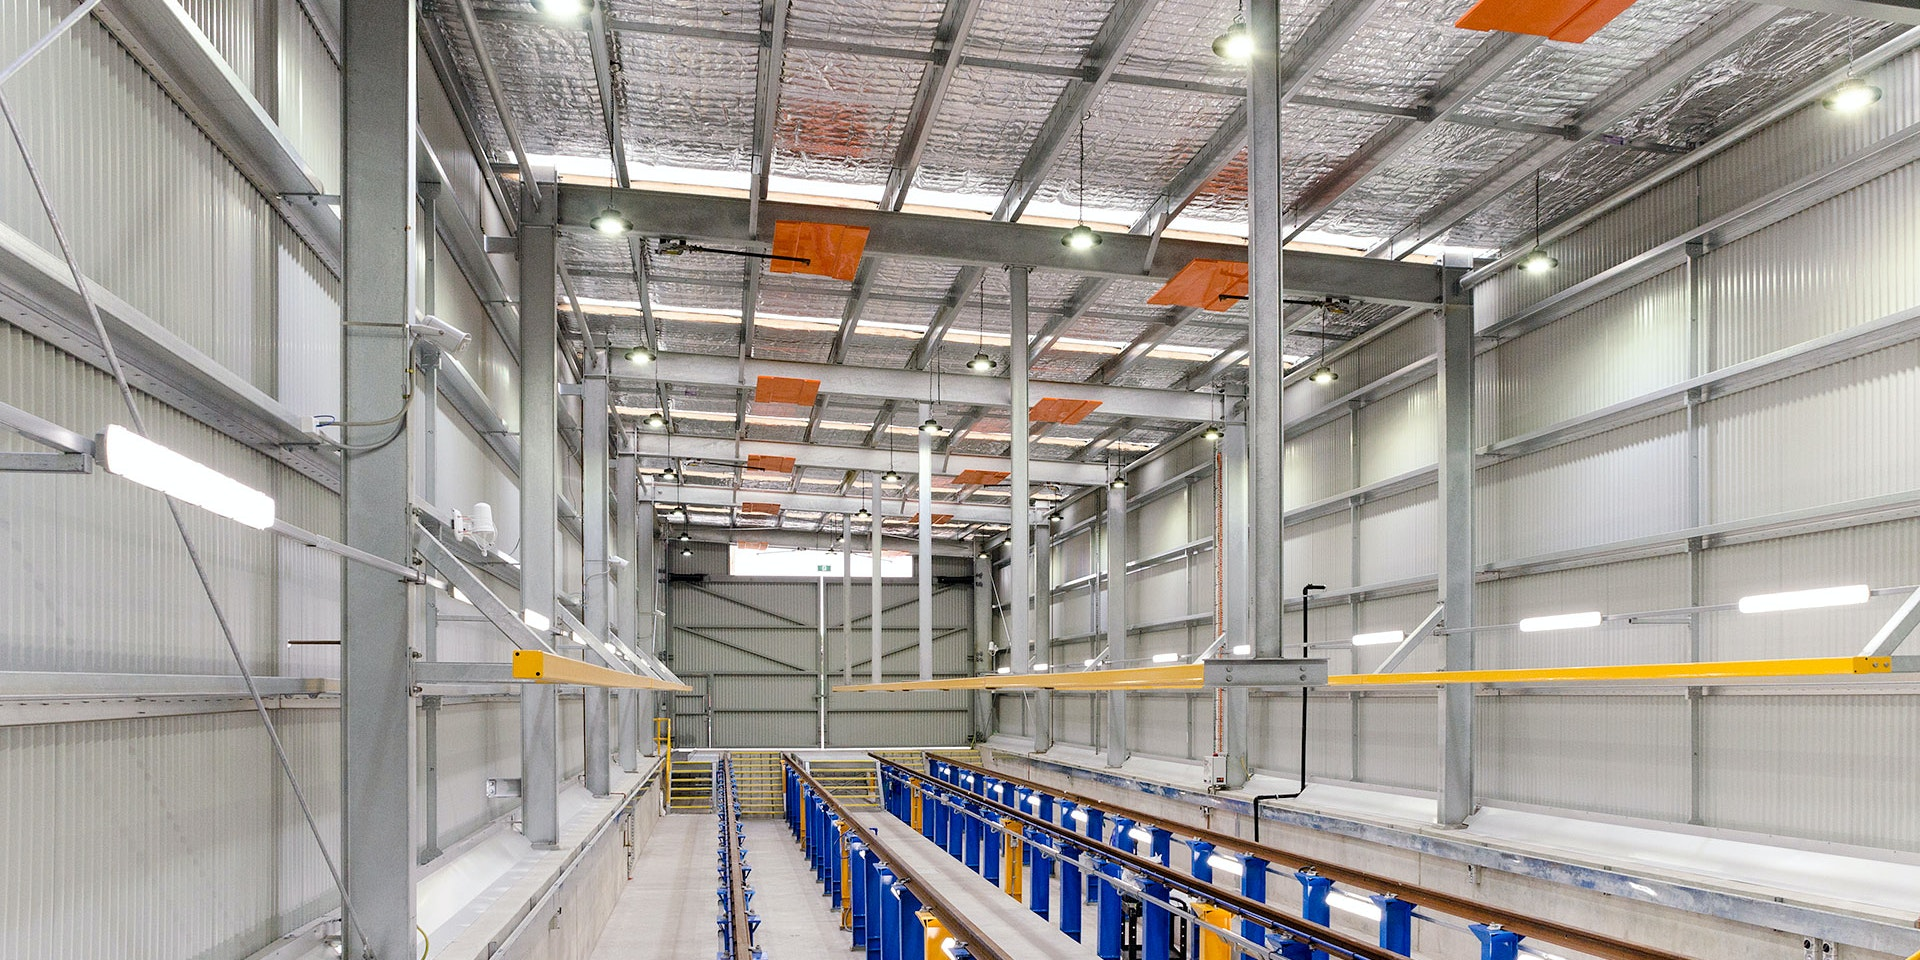 IBYS LED High Bay in application, installed in a Yarra Tram maintenance facility